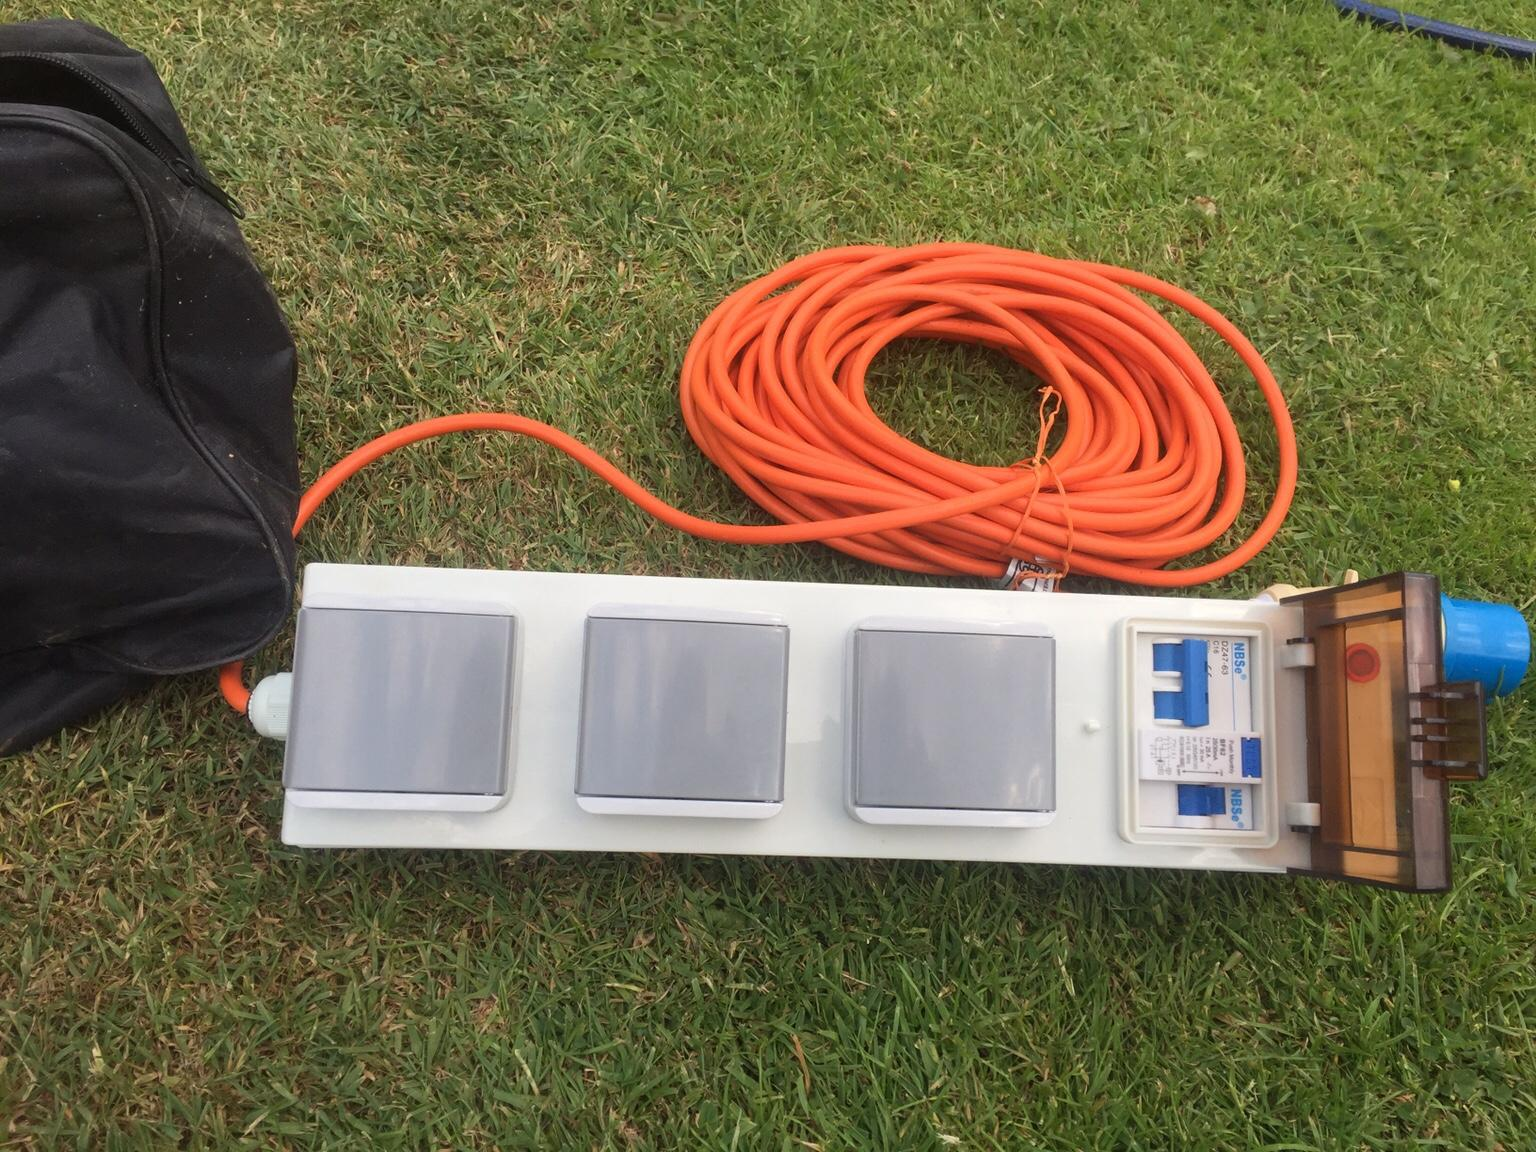 Camping electric hook up in NN14 Northamptonshire for £20 ...